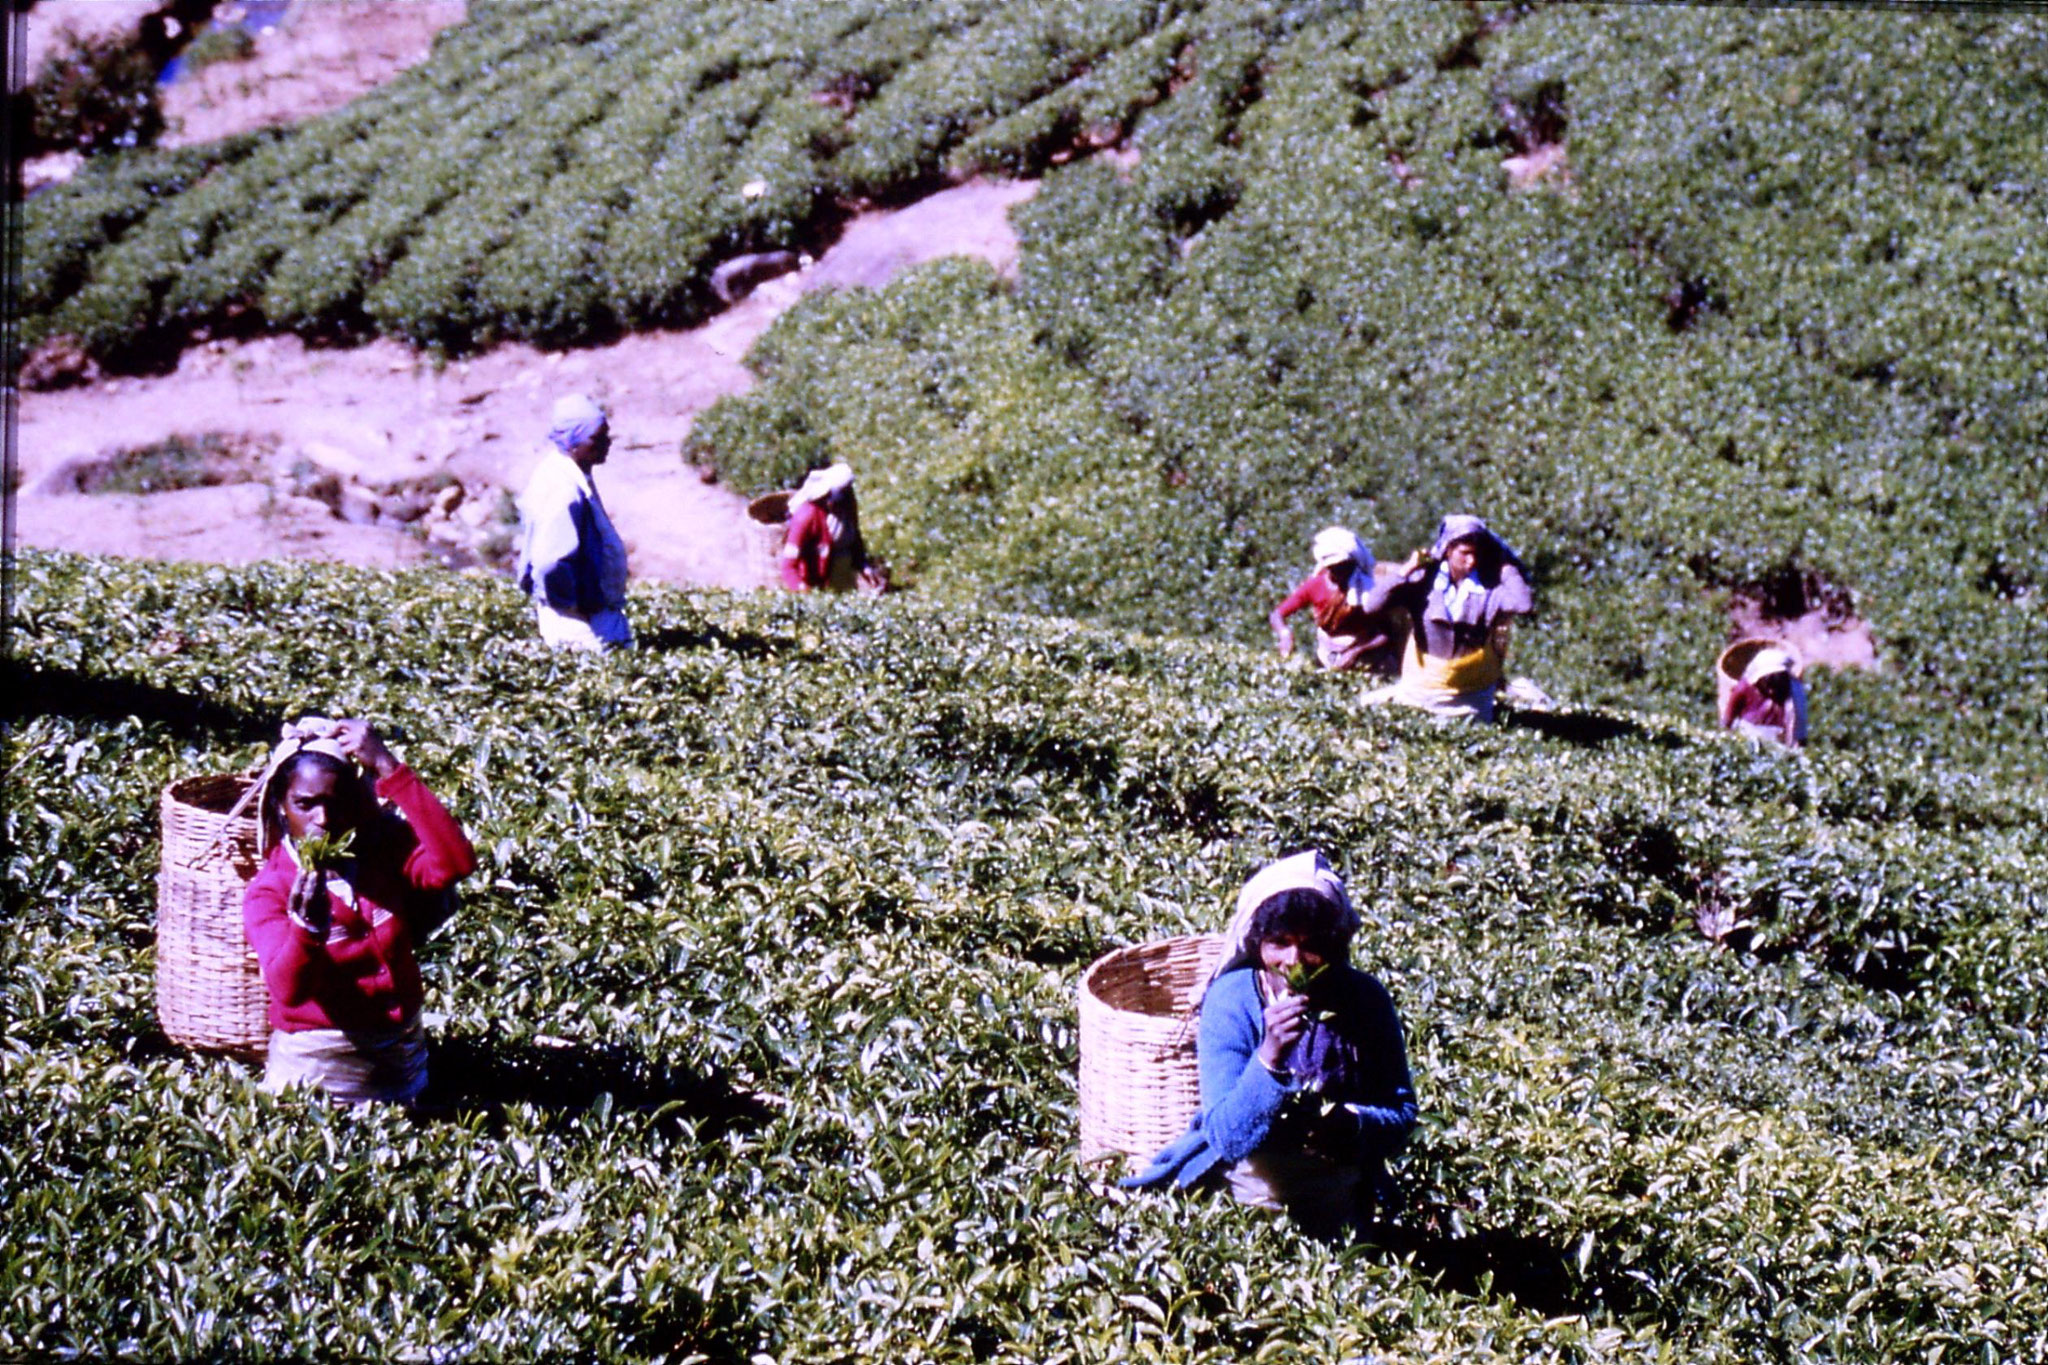 3/2/1990: 4: north of Nuwara Eliya, tea fields